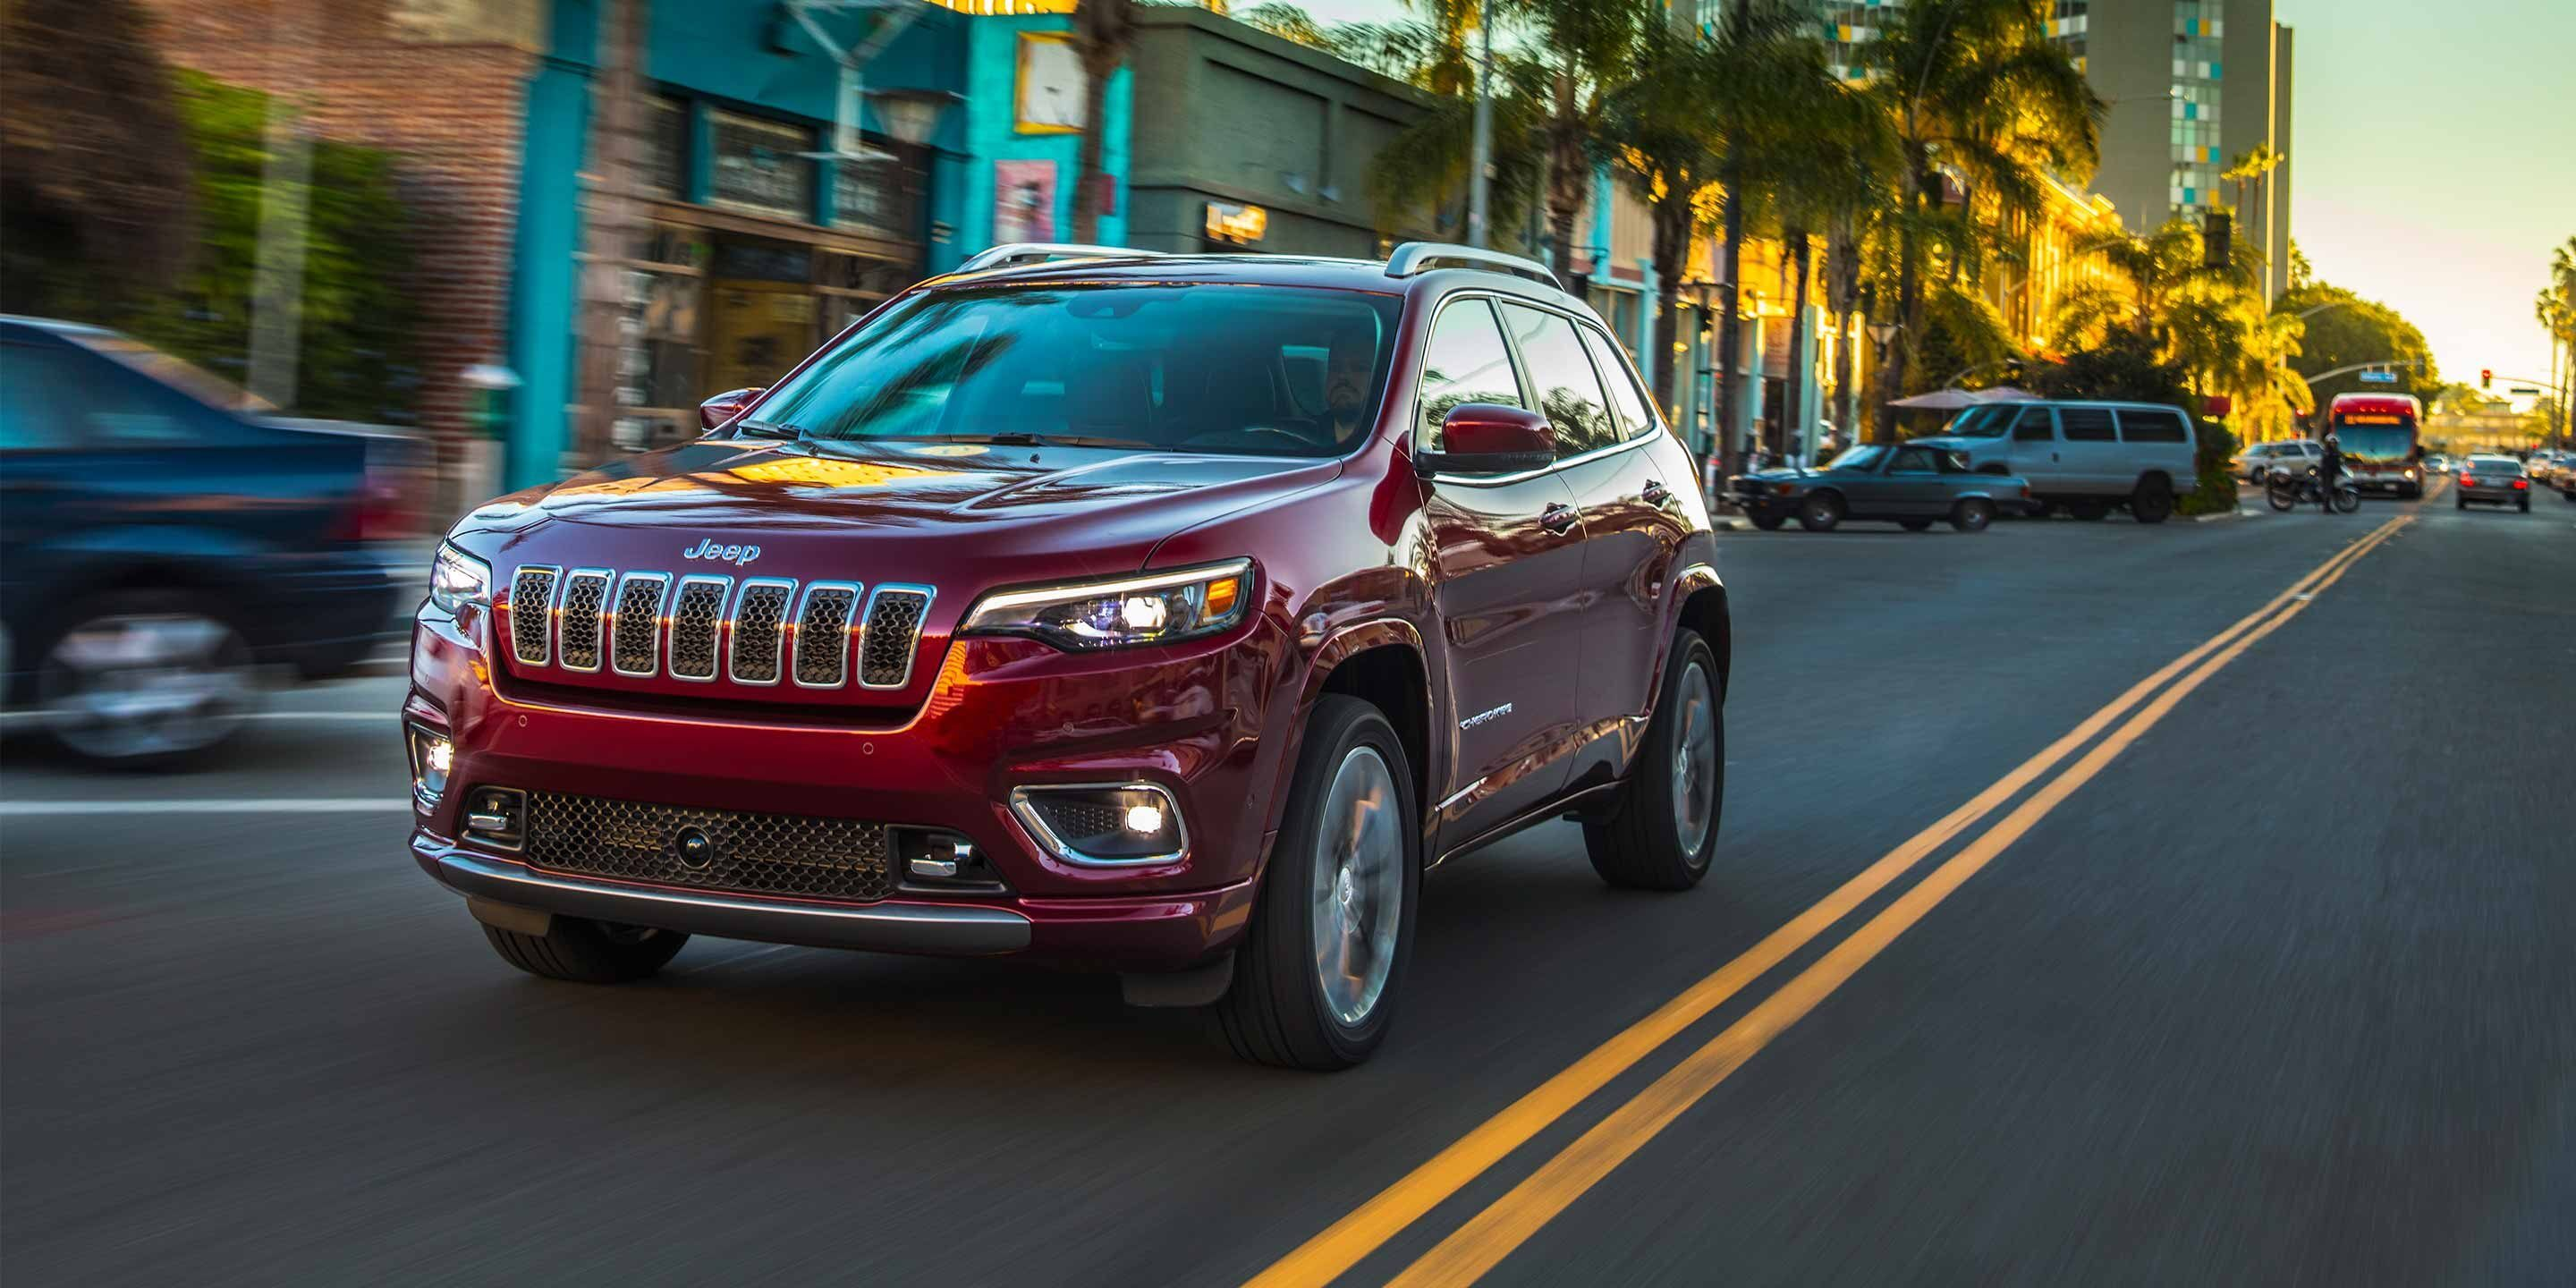 red 2019 jeep cherokee driving through the city